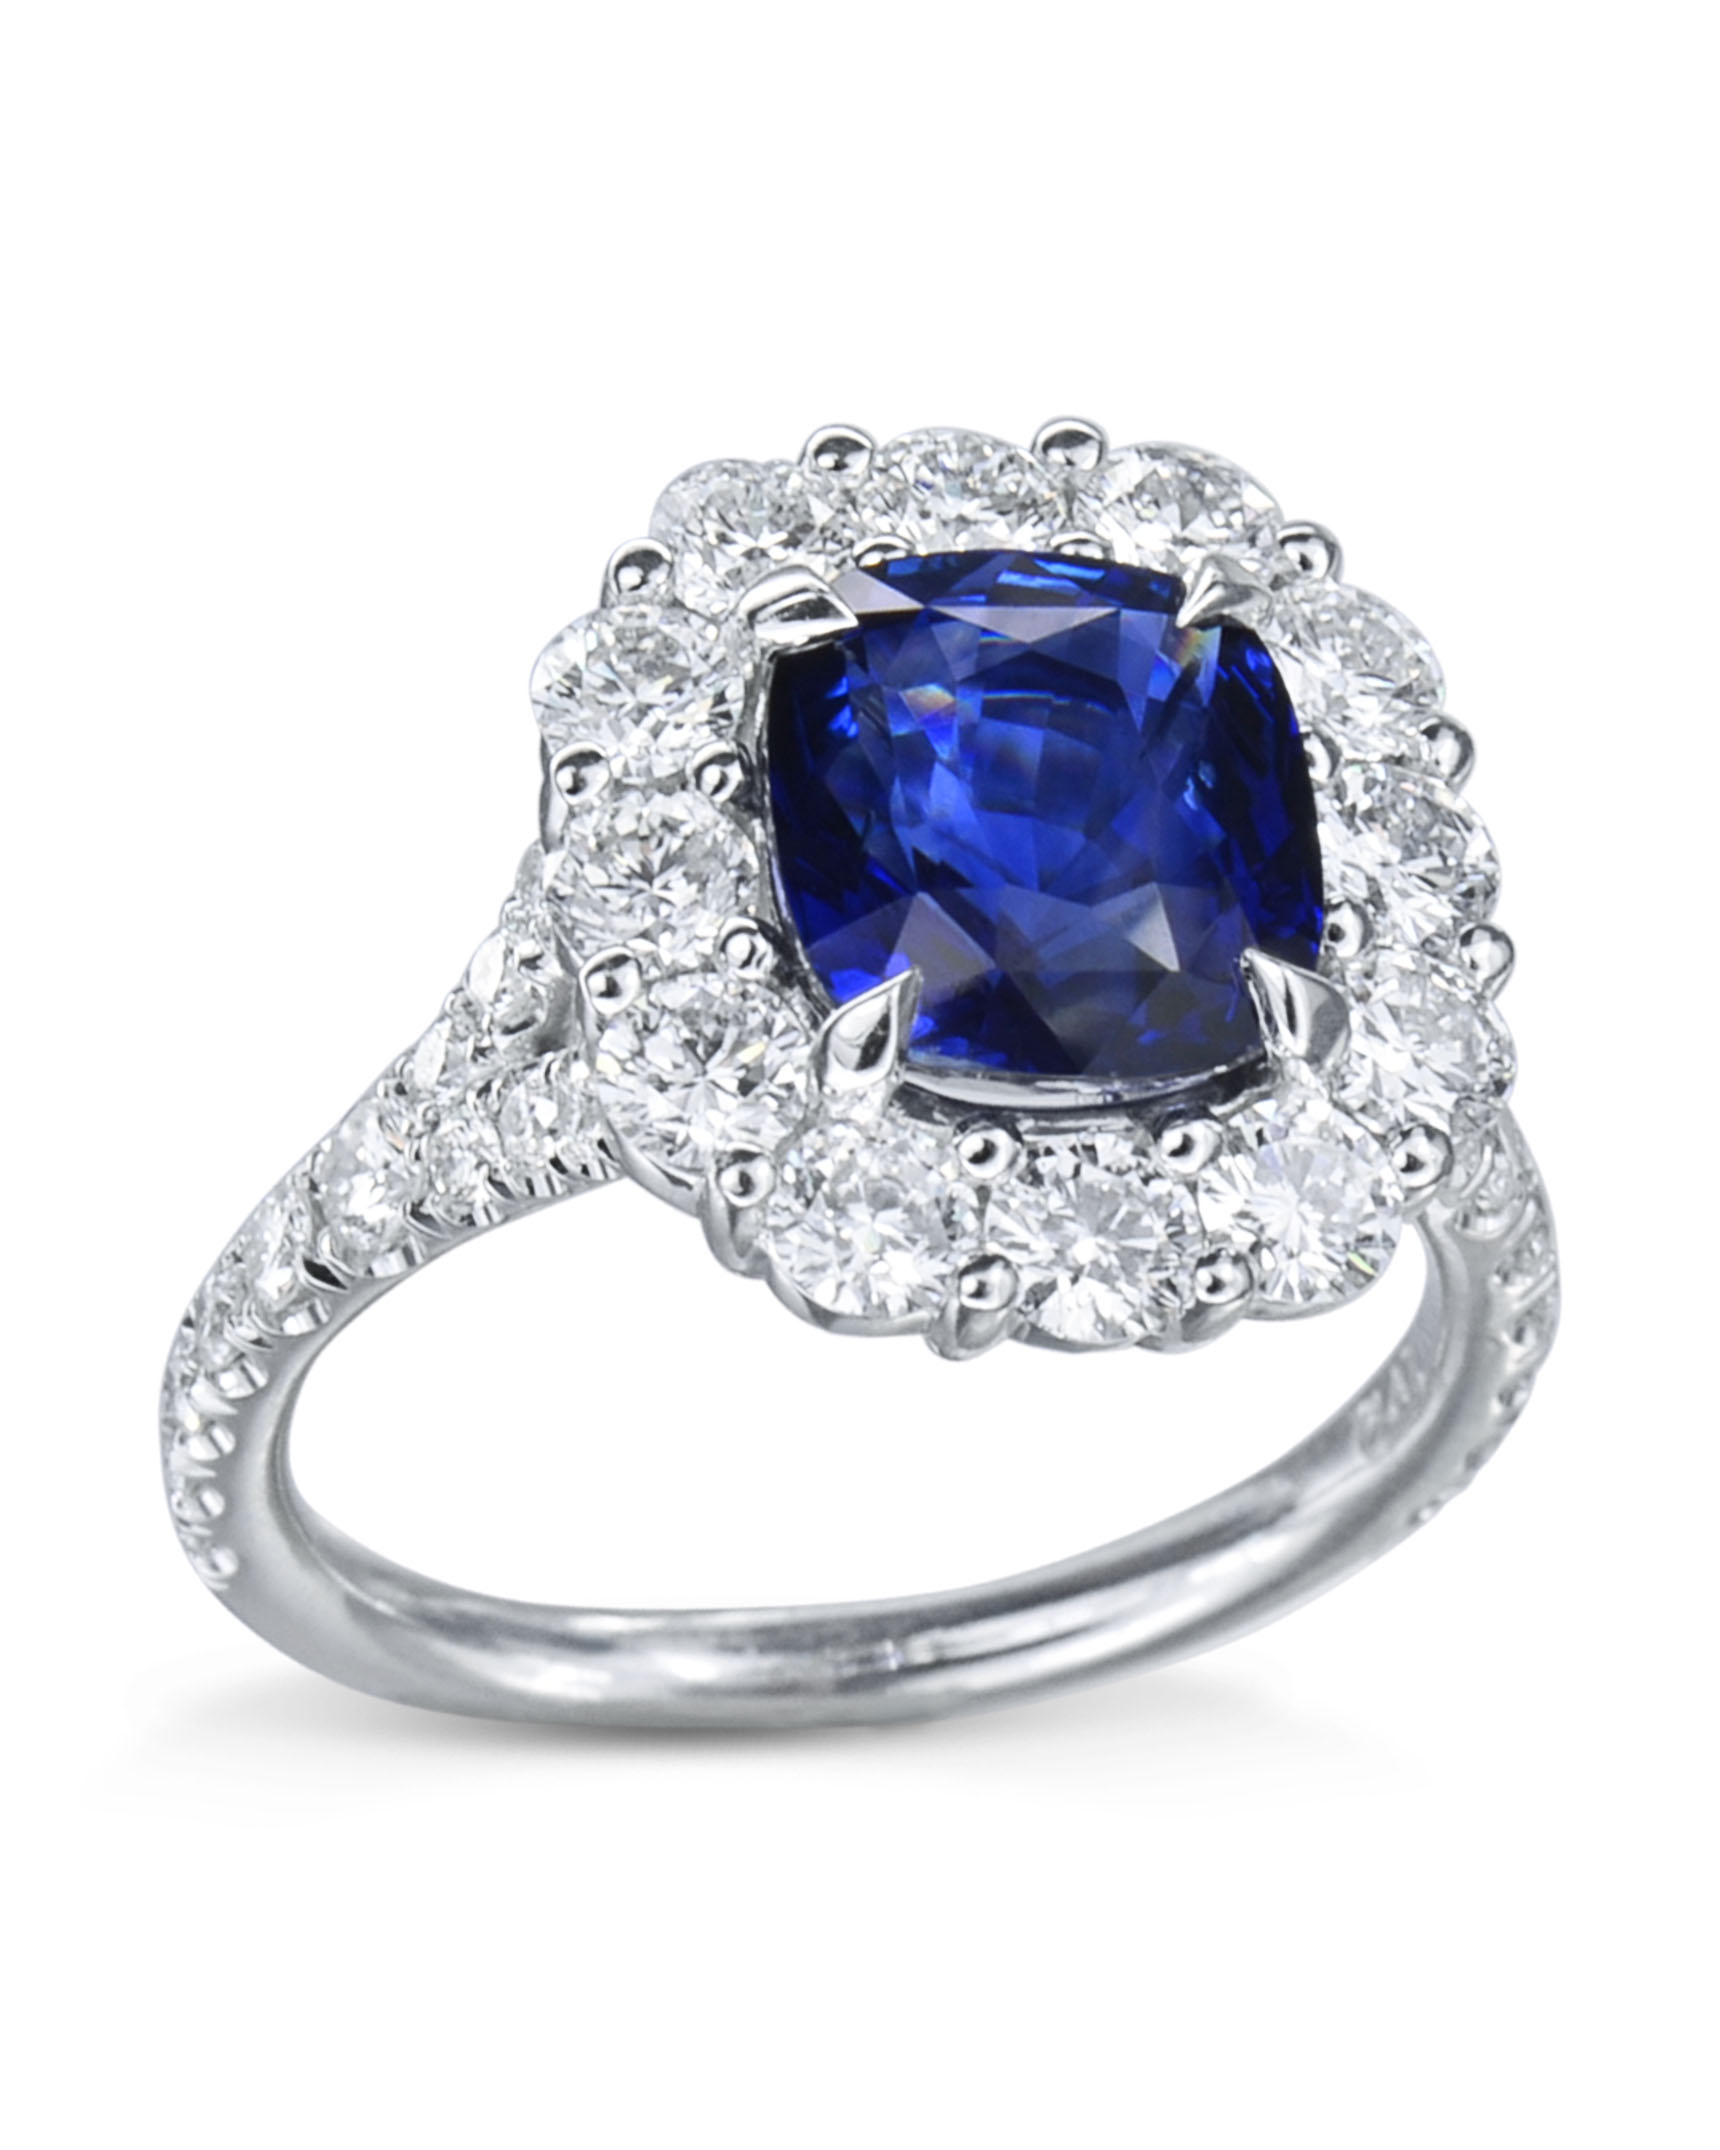 Cushion Cut Sapphire Diamond Ring Throughout Cushion Cut Sapphire Rings (View 12 of 25)